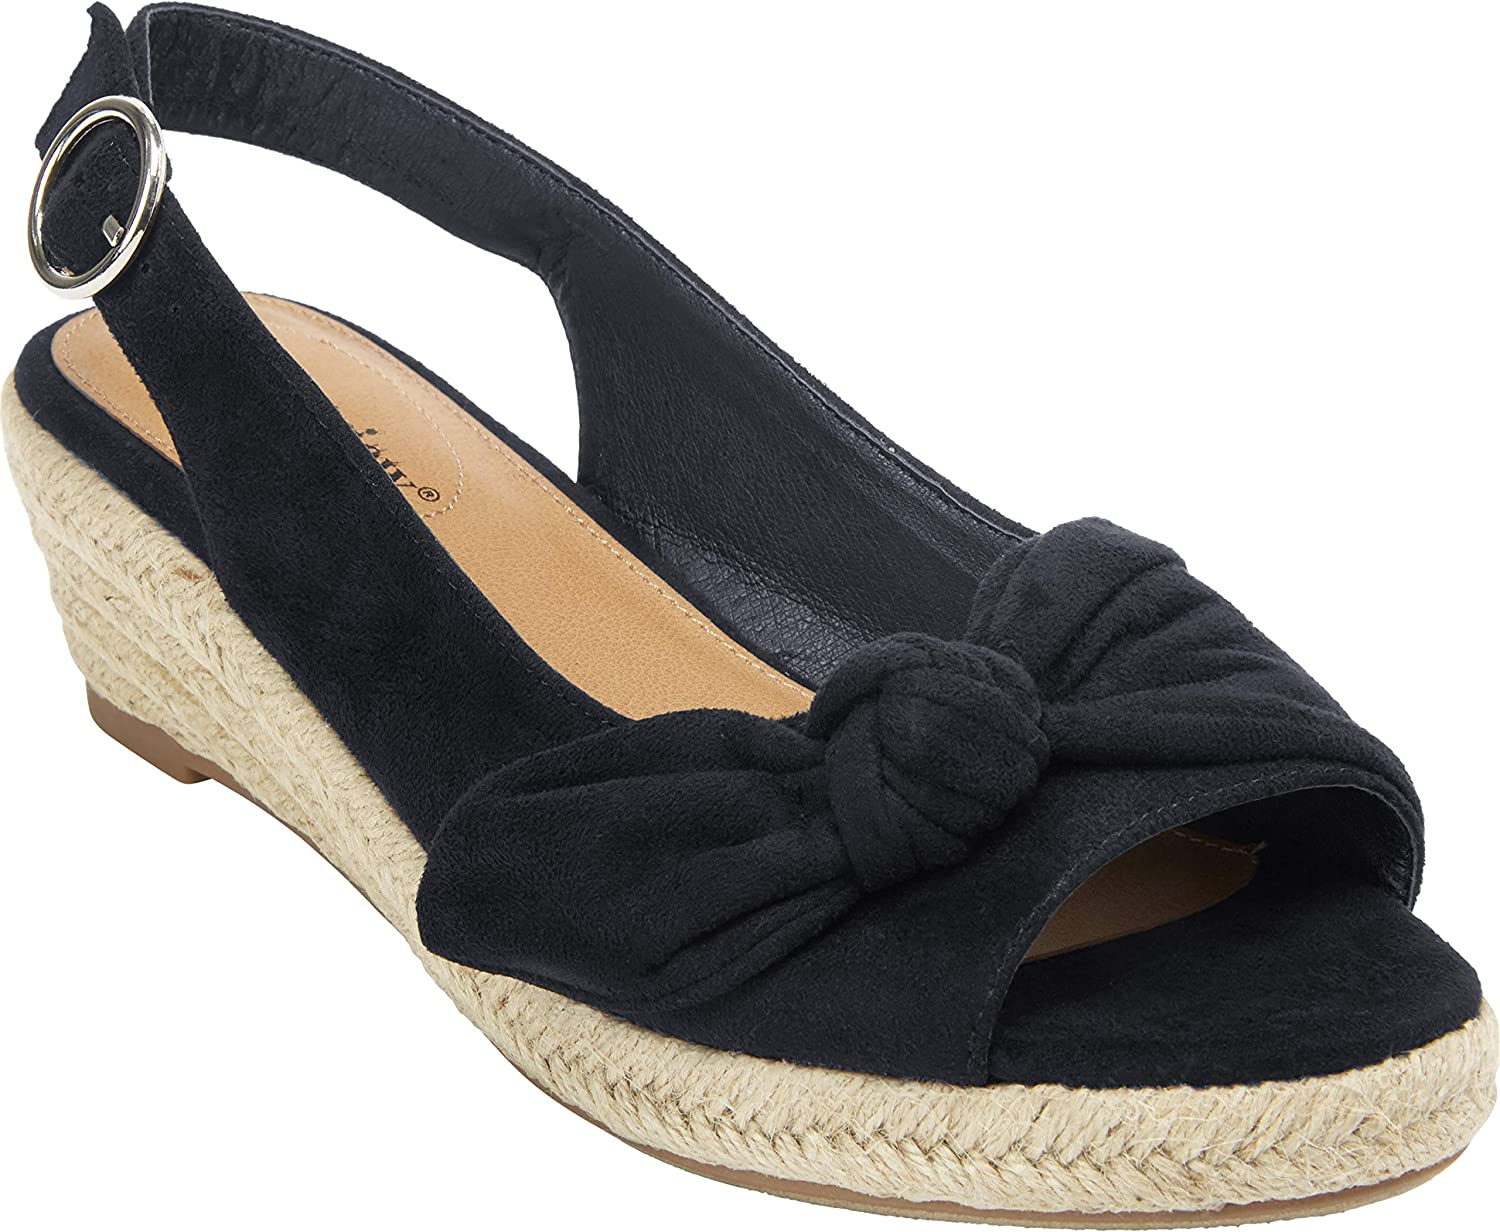 Comfortview Max 77% OFF Women's Wide Width The Espadrille NEW before selling ☆ Zanea